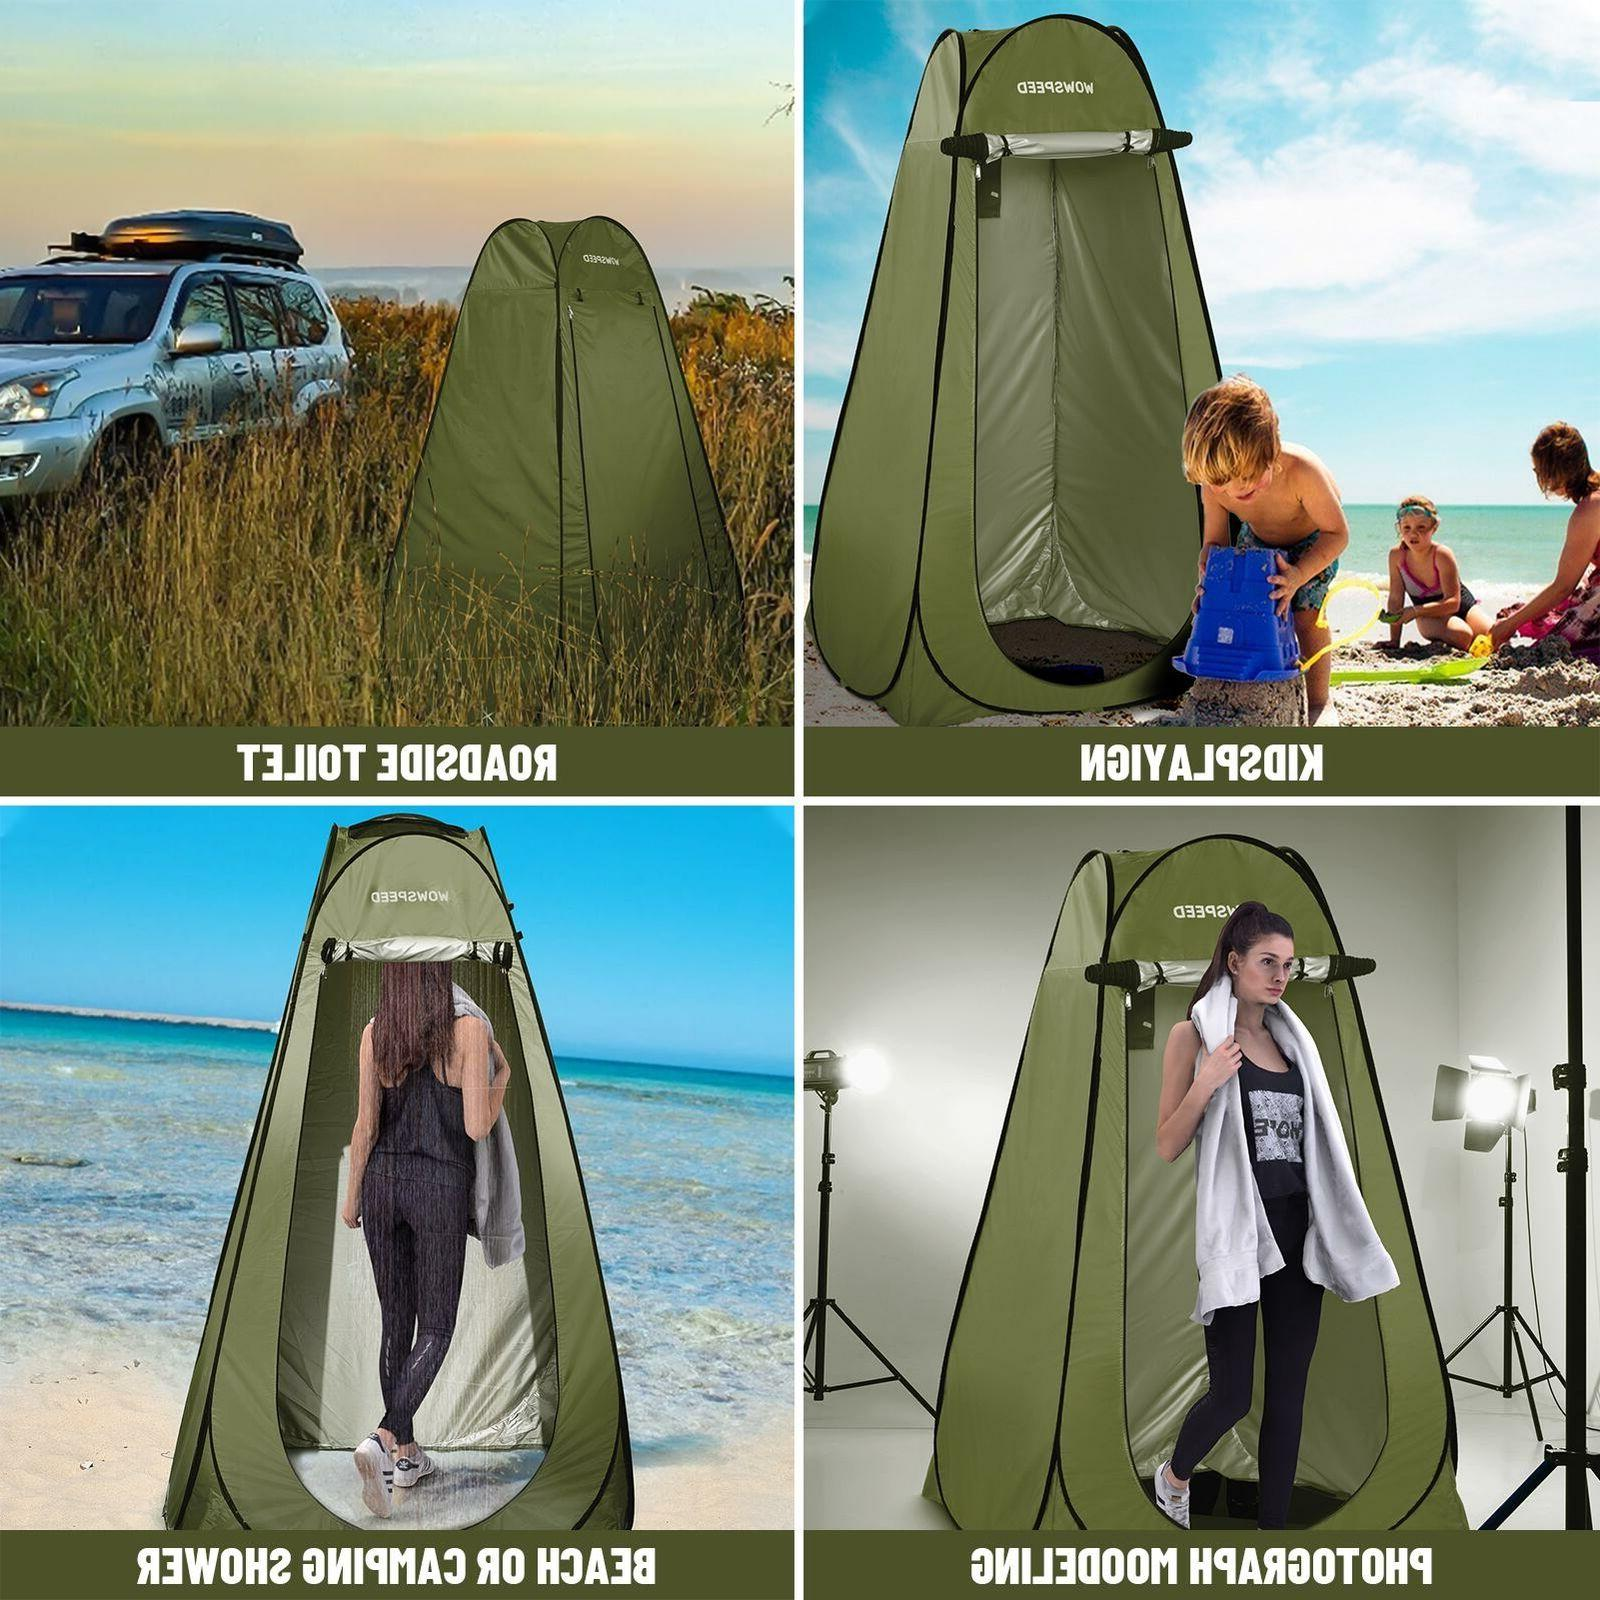 75 Privacy Tent for Shower Changing Room Bathroom Camping